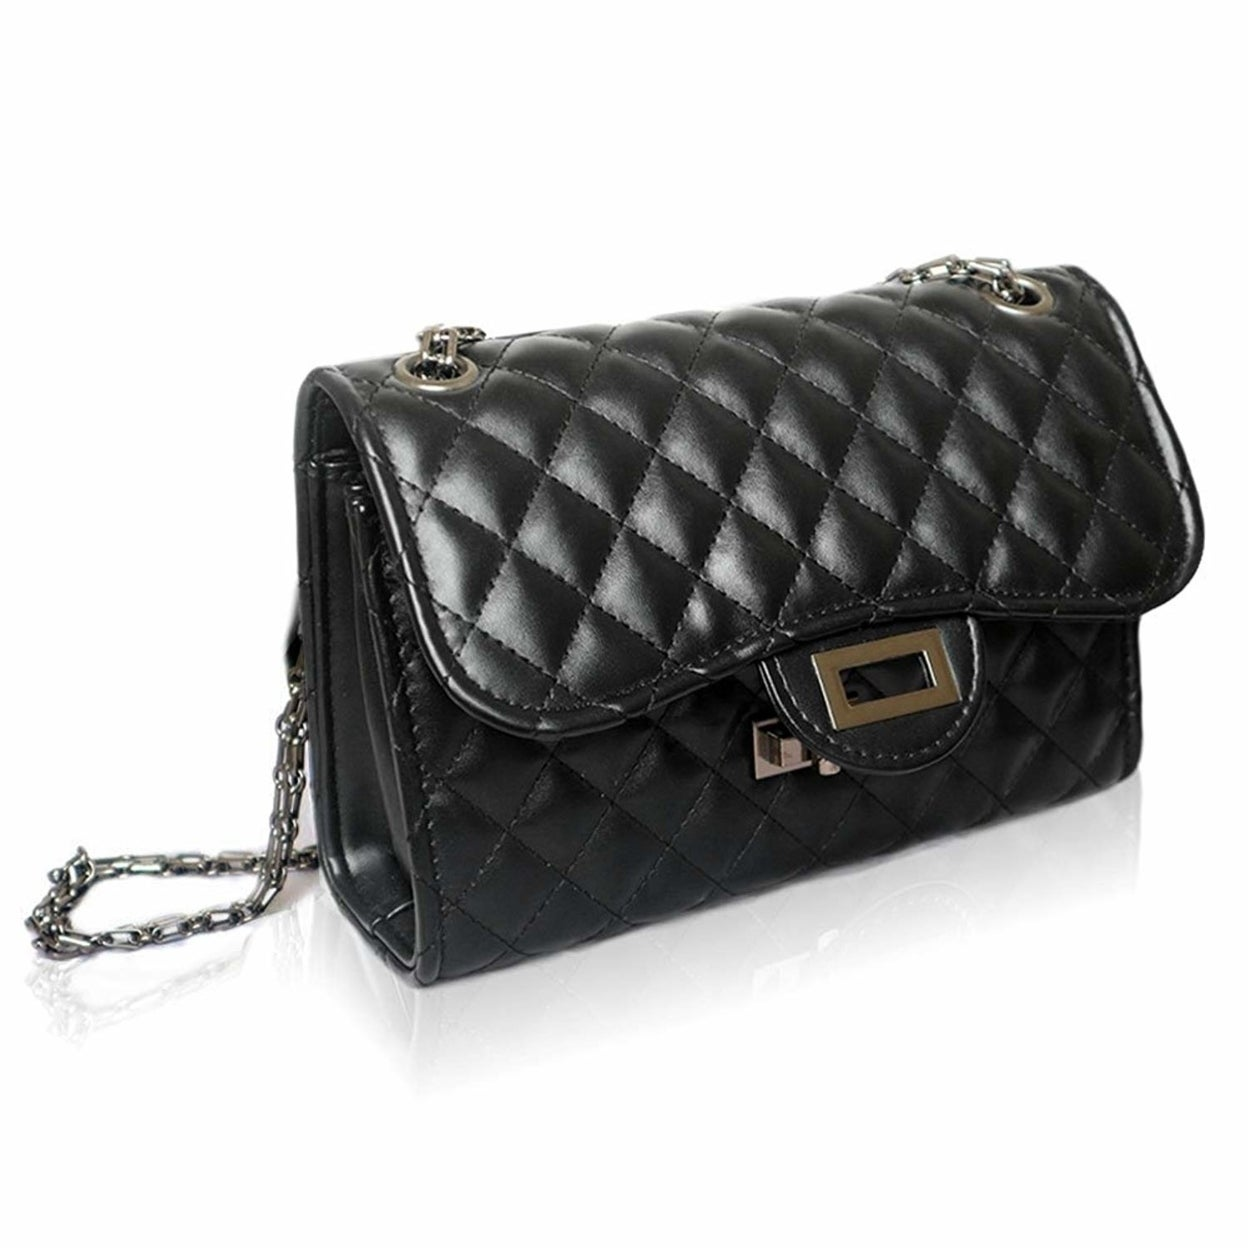 f5fd4b8d0b10 Small Classic Crossbody Shoulder Bag for Women Quilted Purse With Metal  Chain Strap